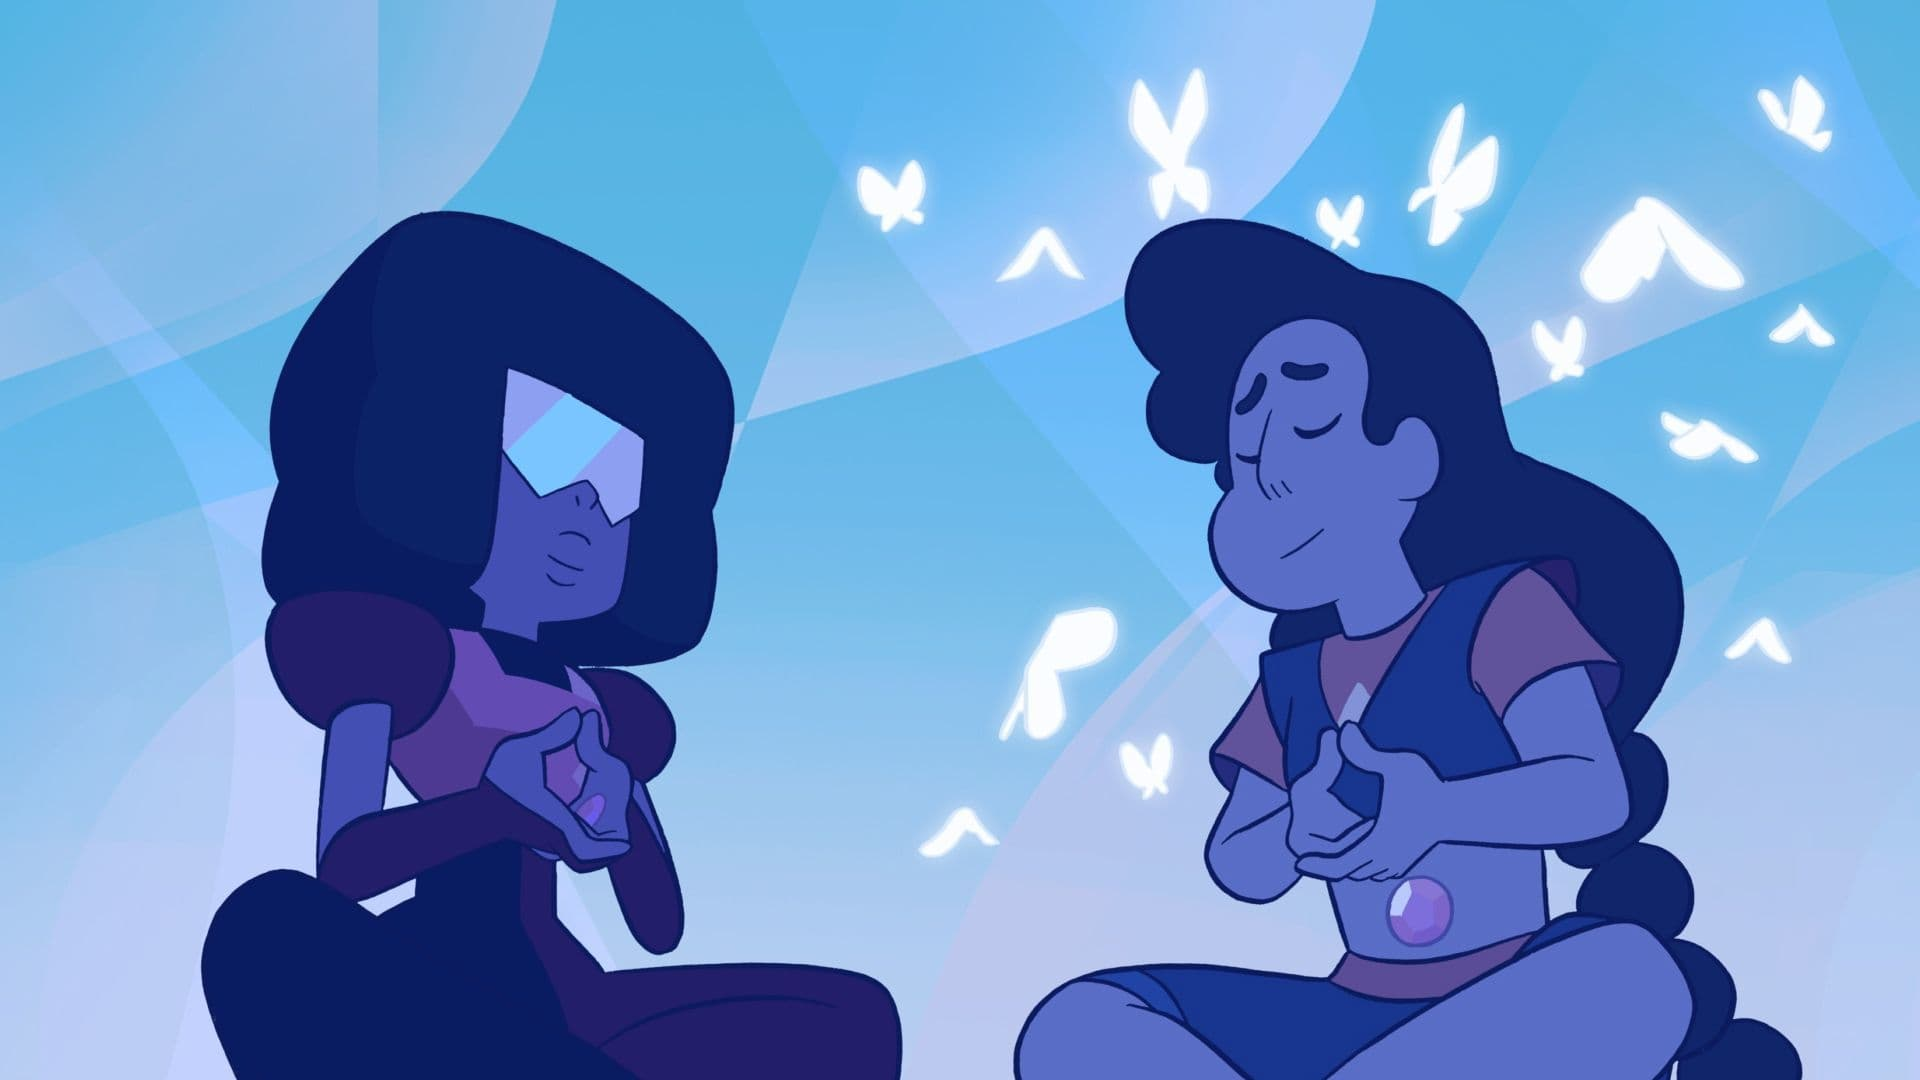 steven universe season 4 episode 4 watch steven universe season 4